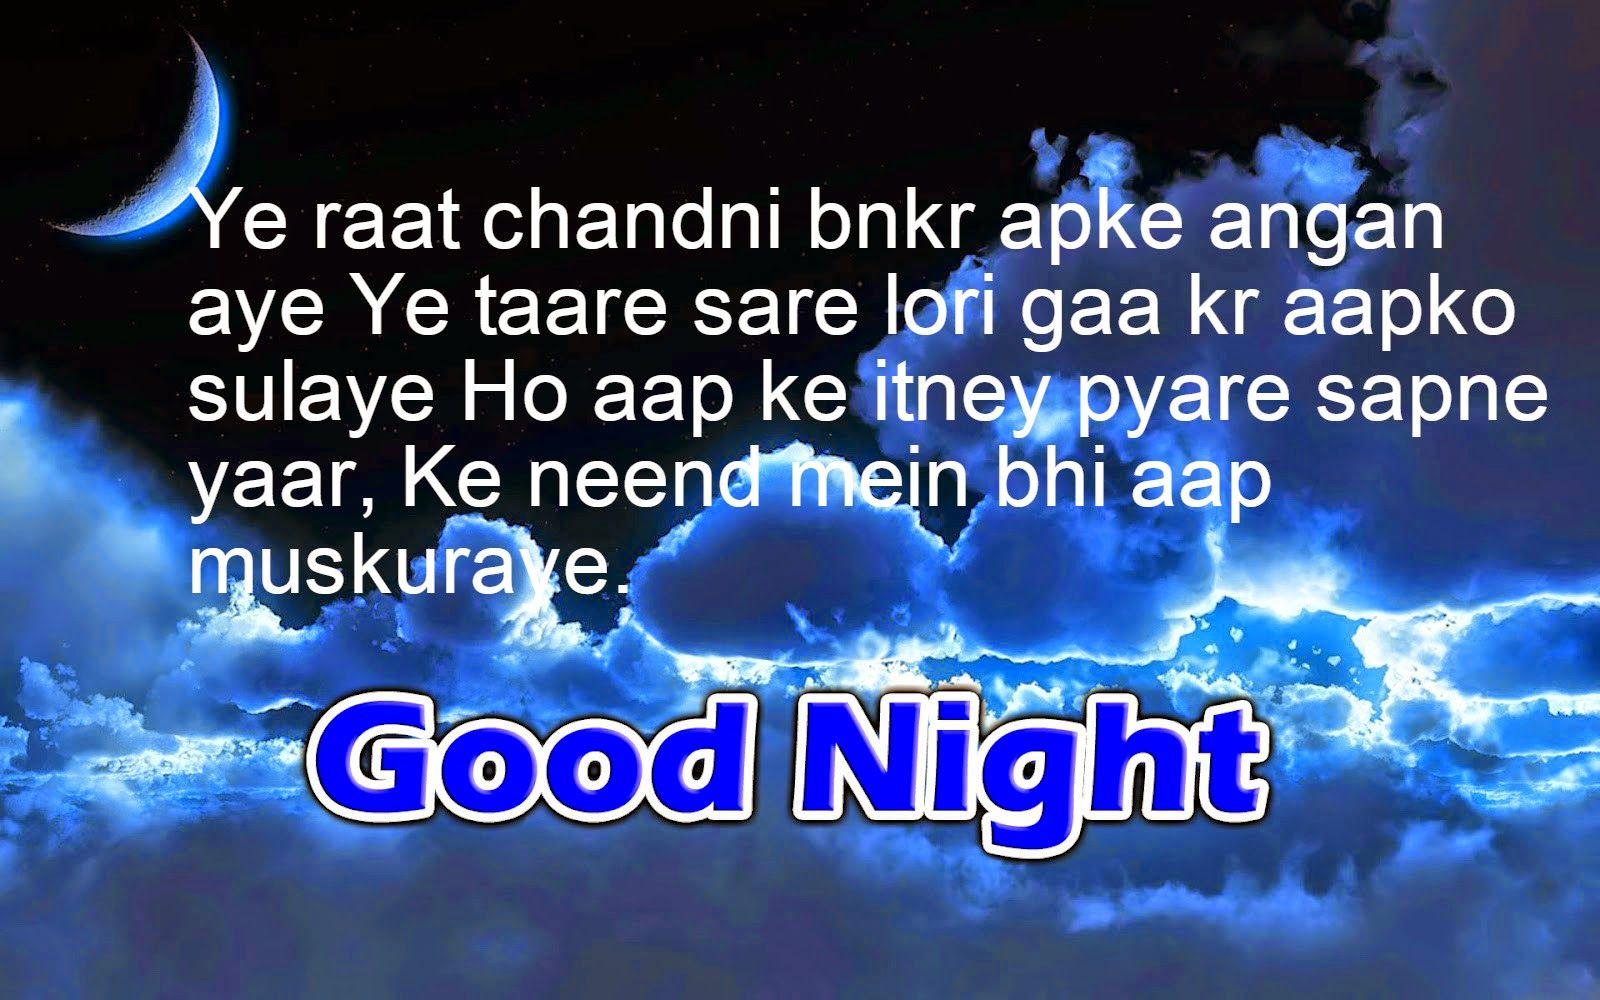 Wallpaper download good night - Every India Good Night Friends